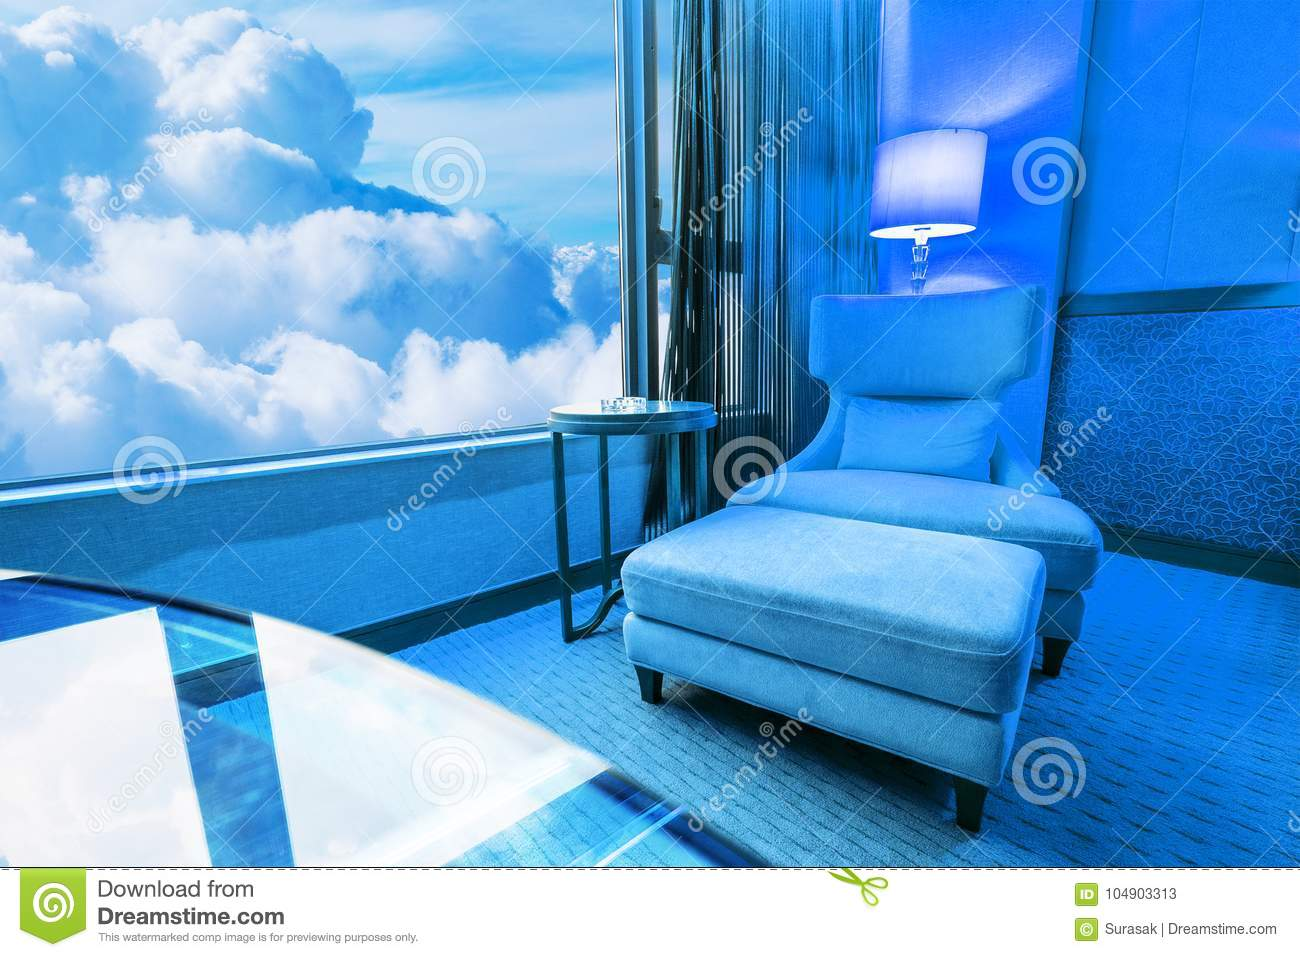 2 956 Blue Living Room Sky Photos Free Royalty Free Stock Photos From Dreamstime